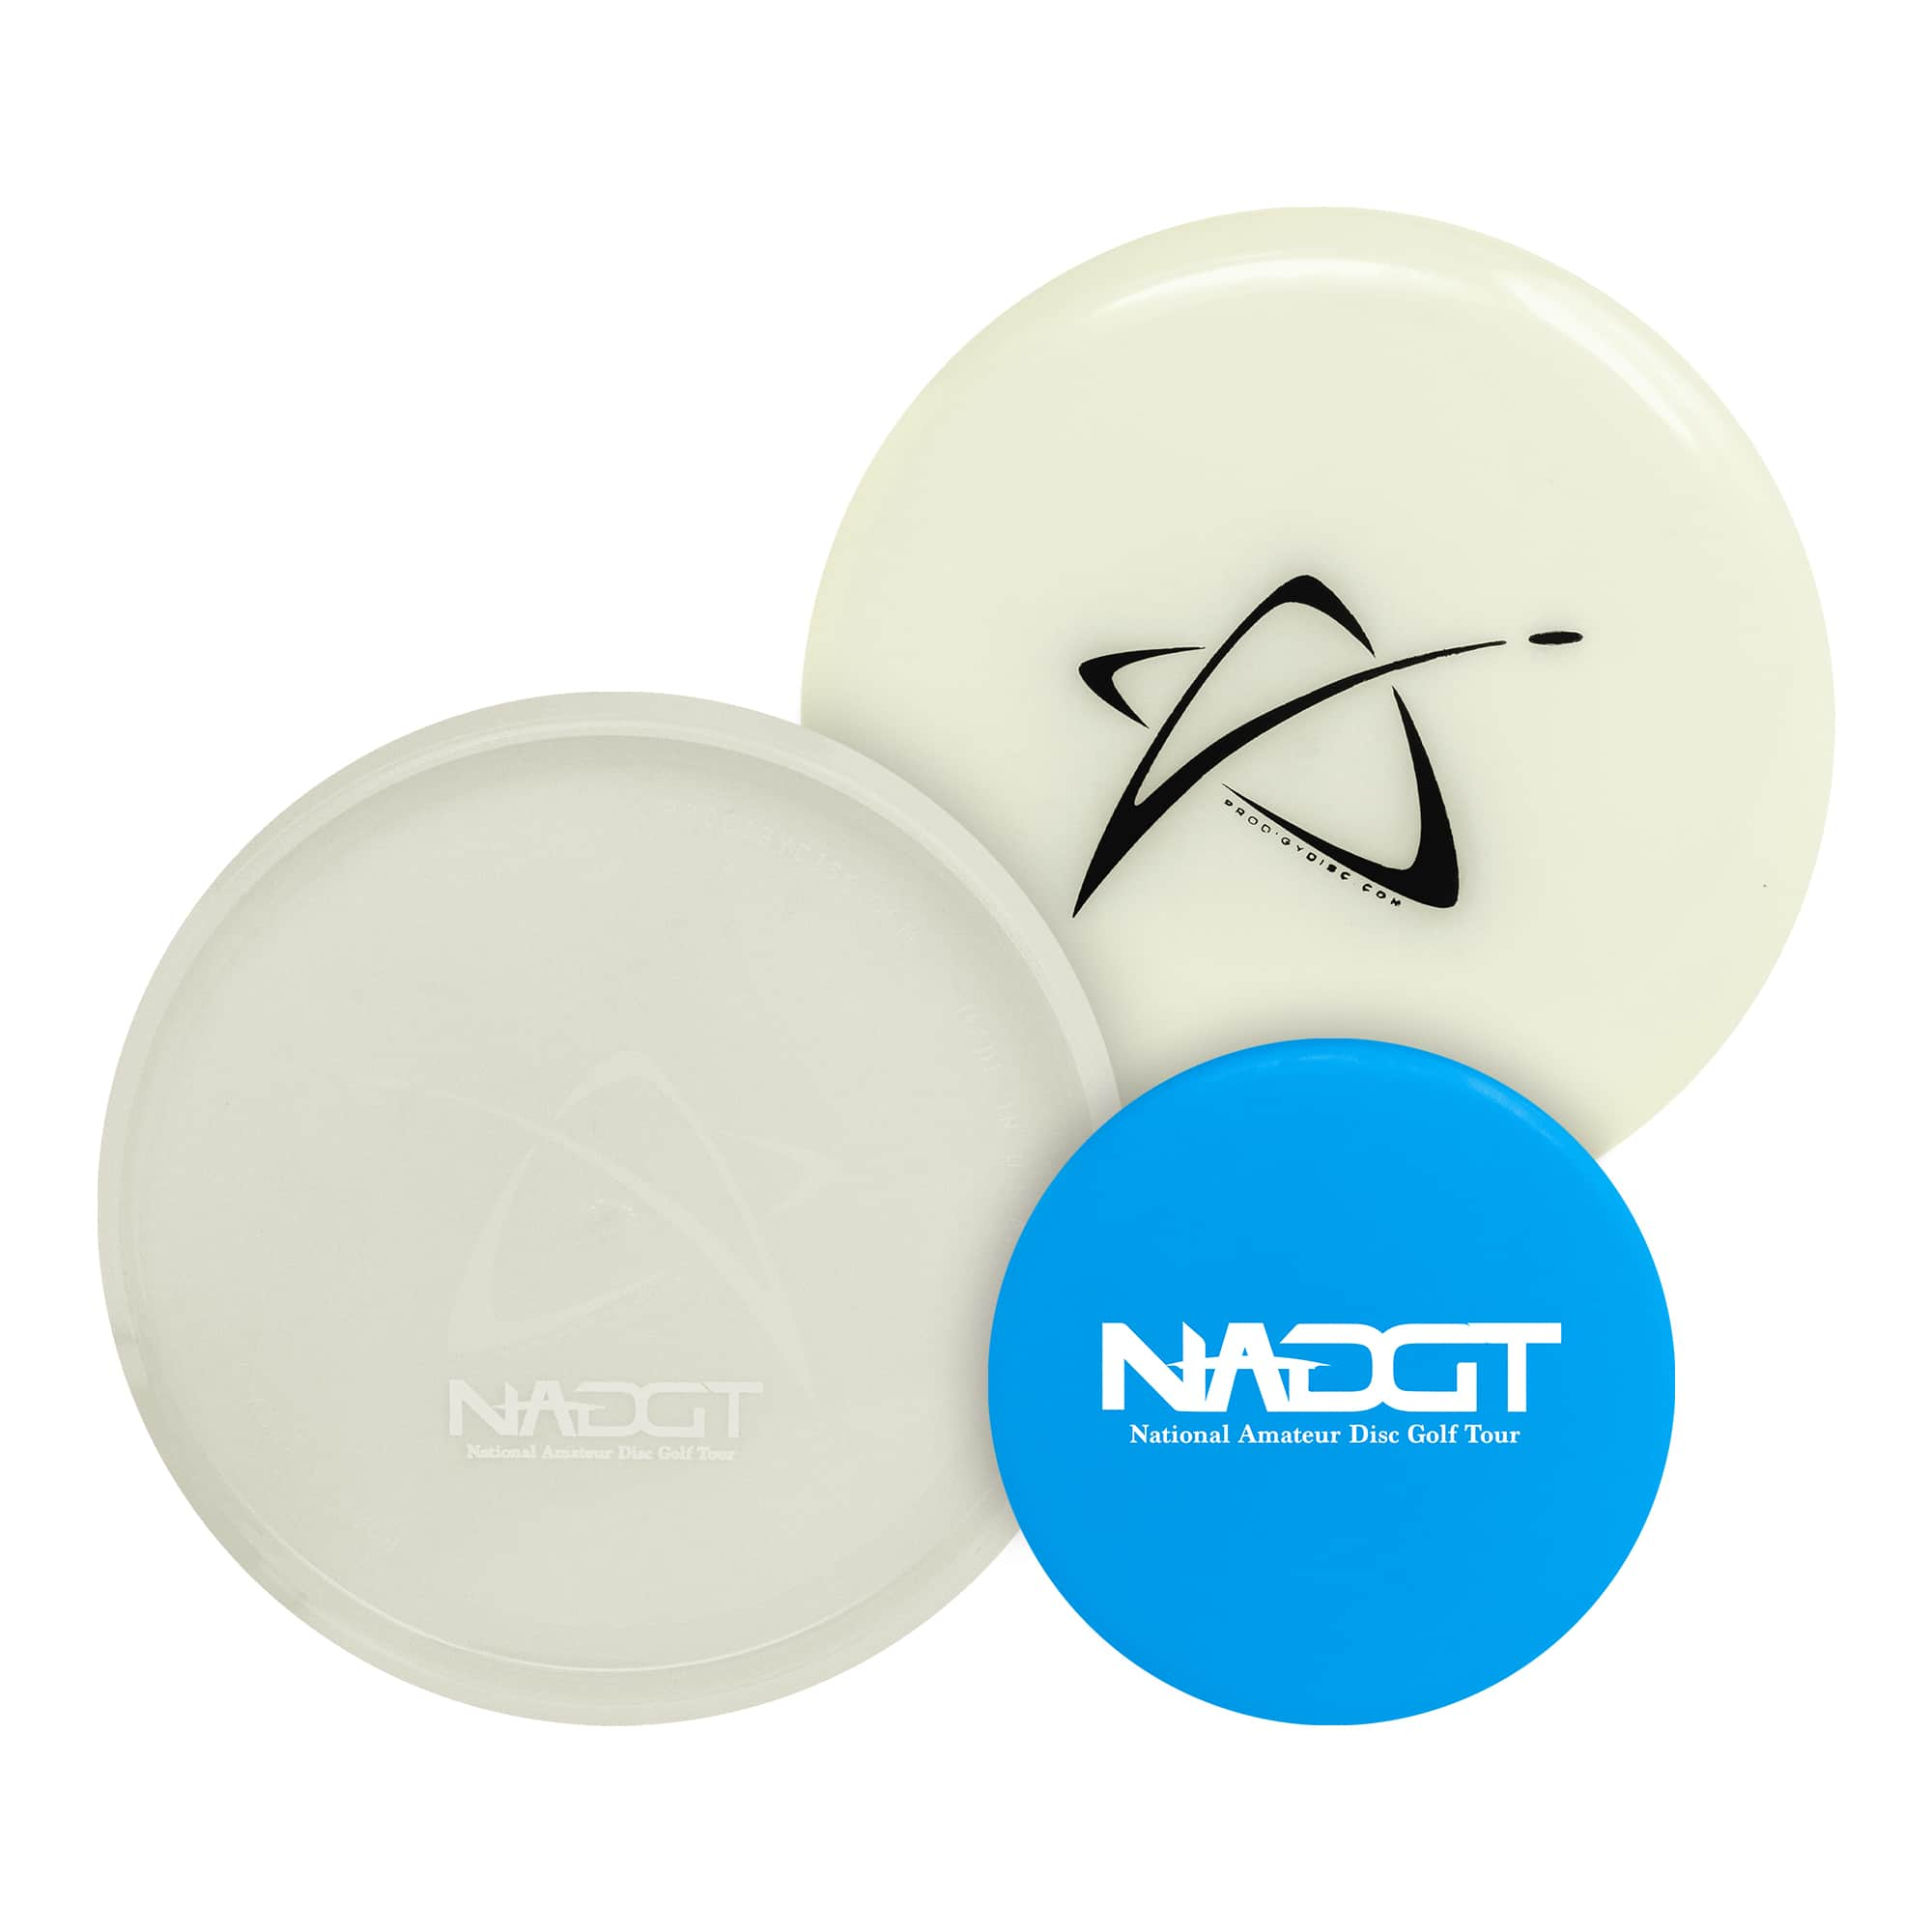 Disc Golf Sets & Bundles